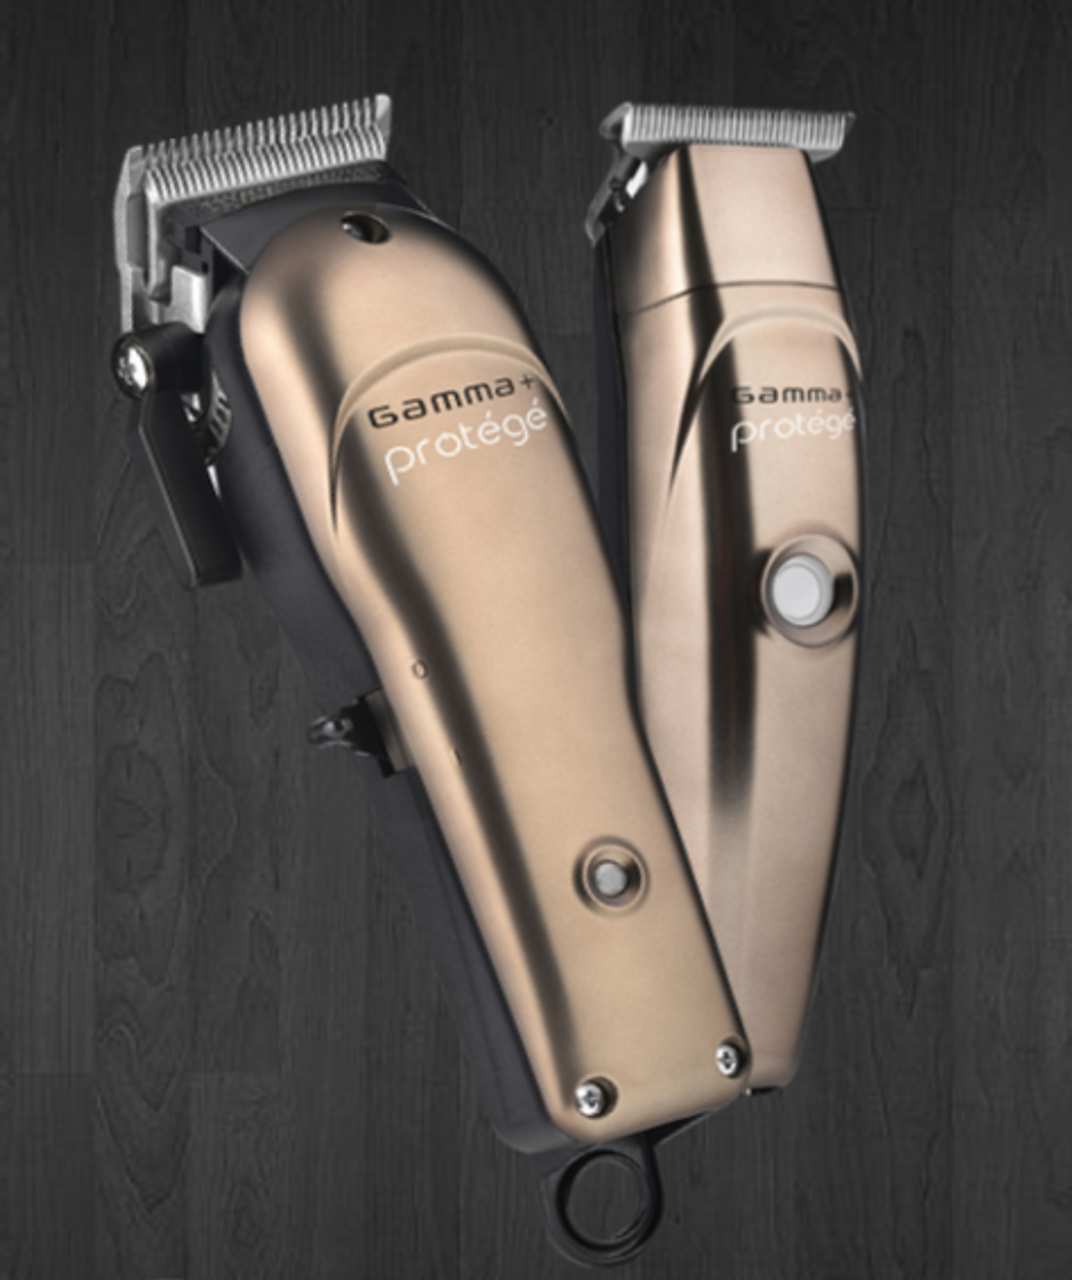 Gamma Protege Clipper and Trimmer Combo